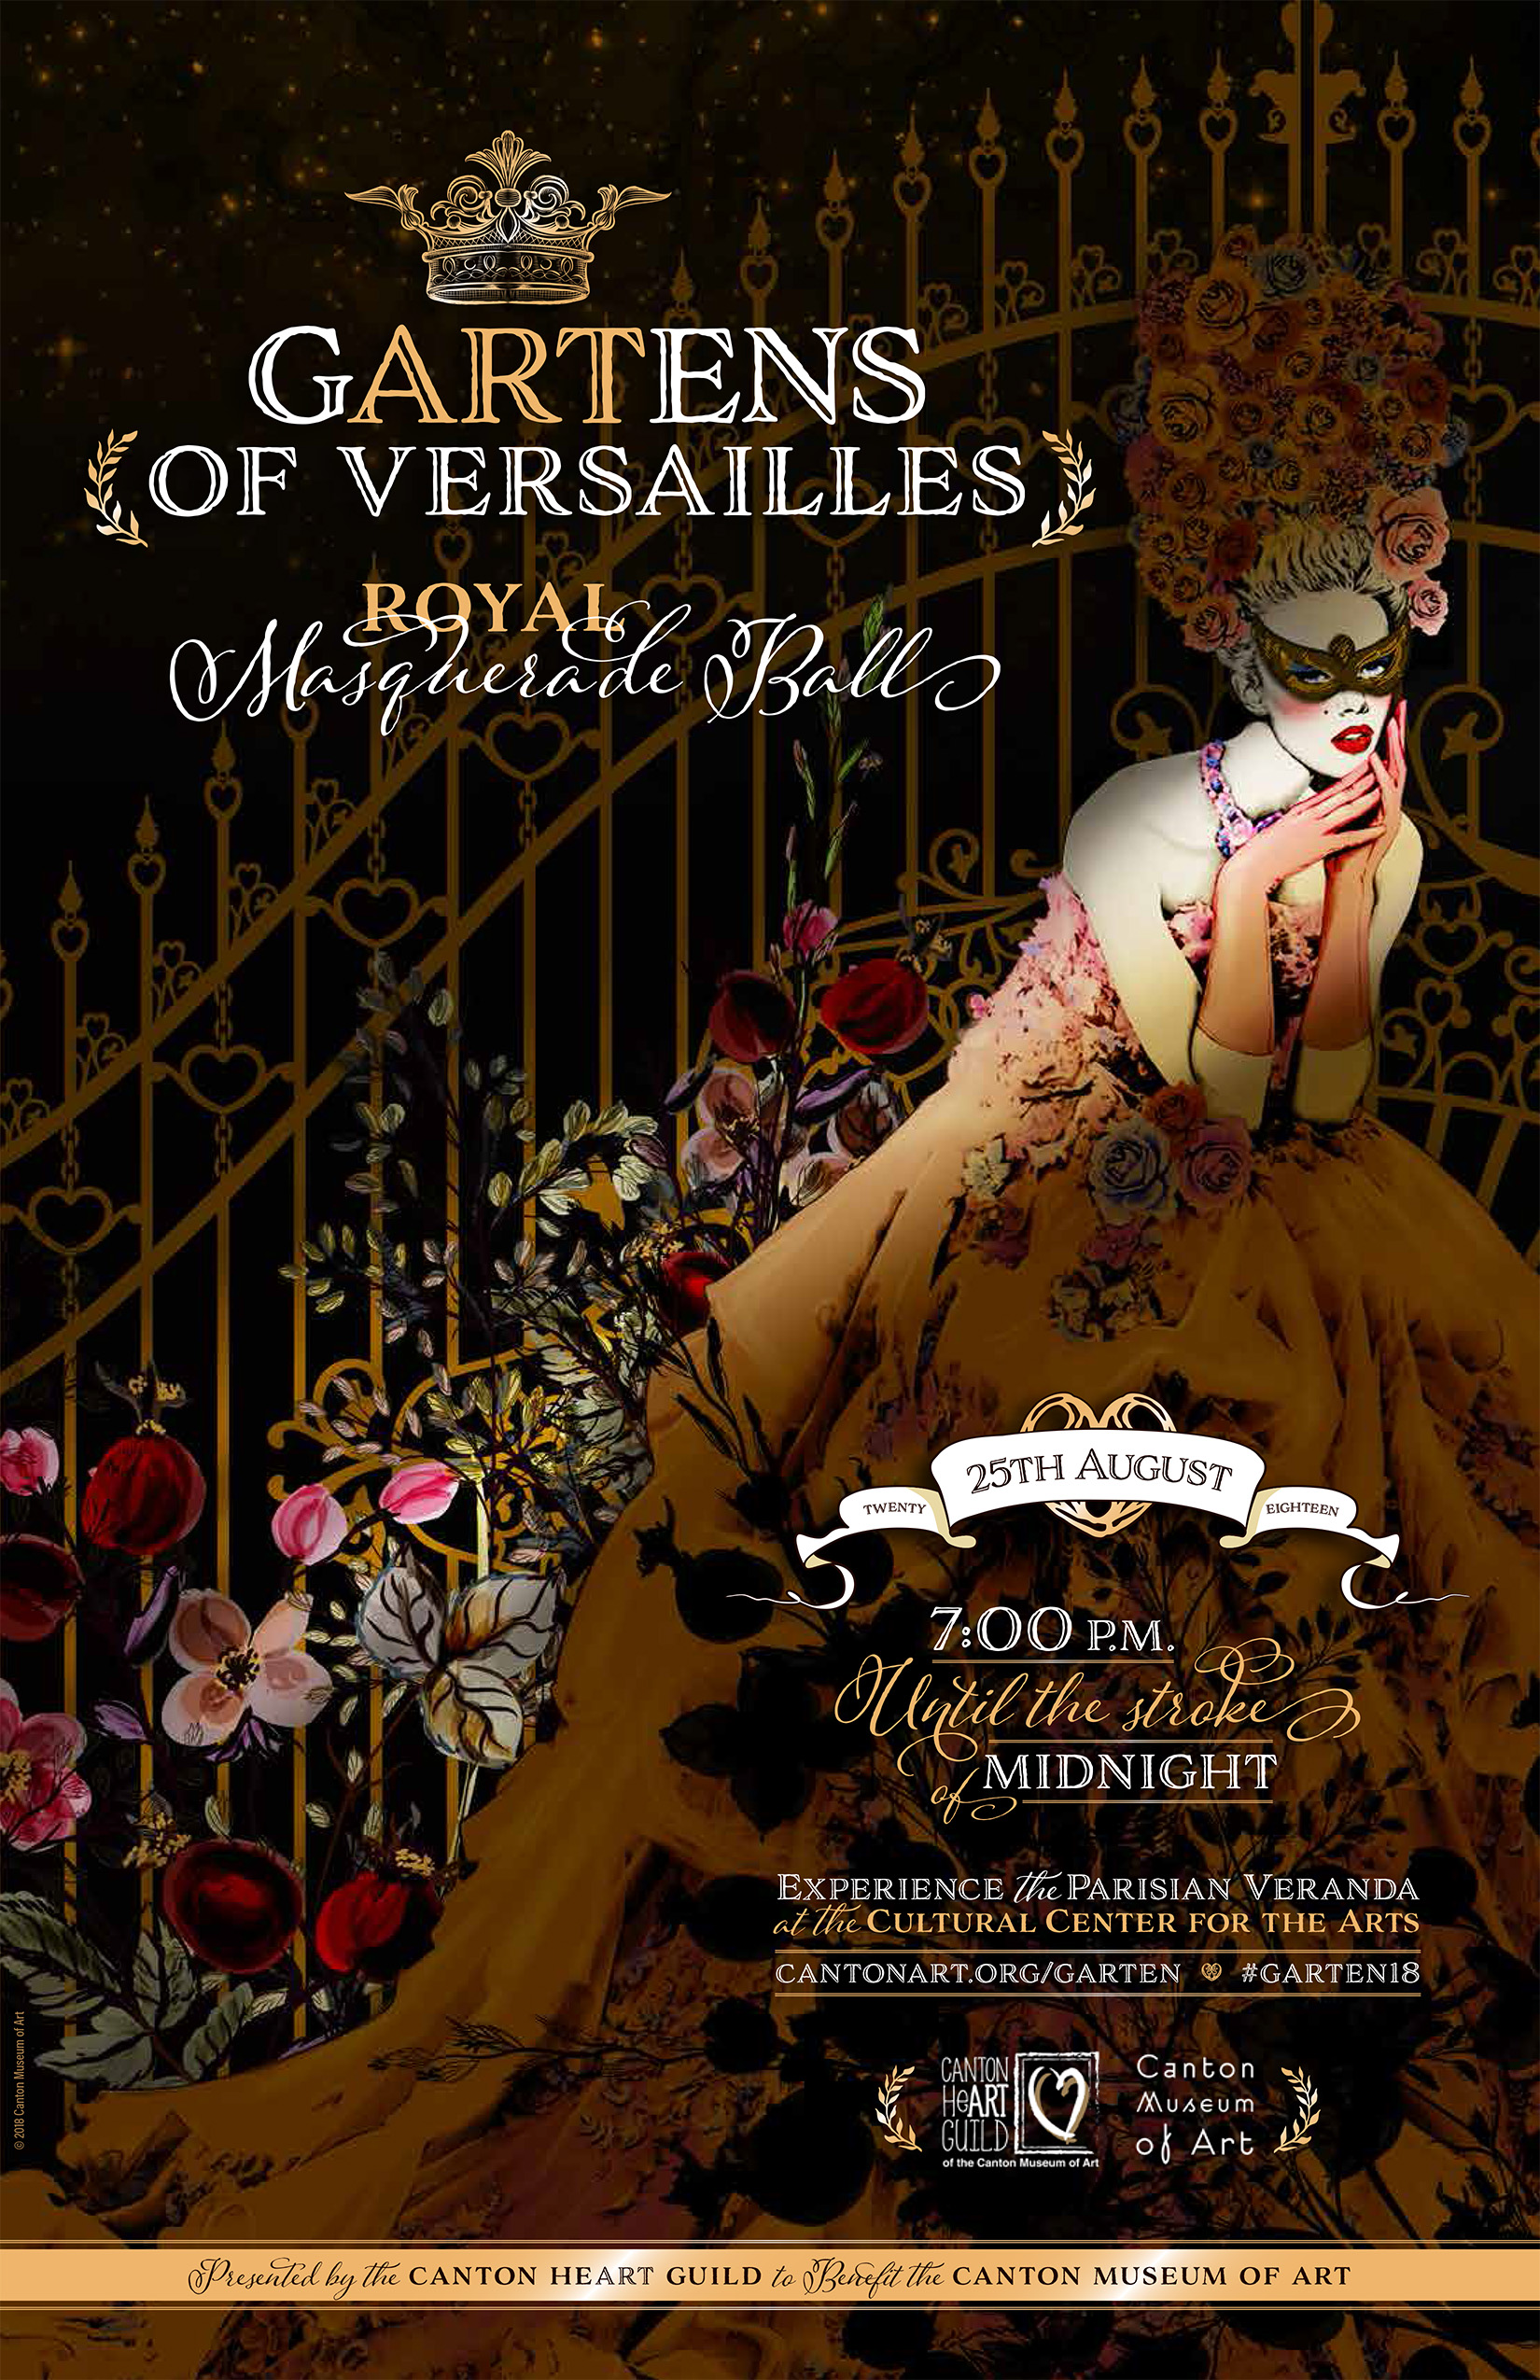 Tickets On Sale Now for the gARTens of Versailles Royal Masquerade ...